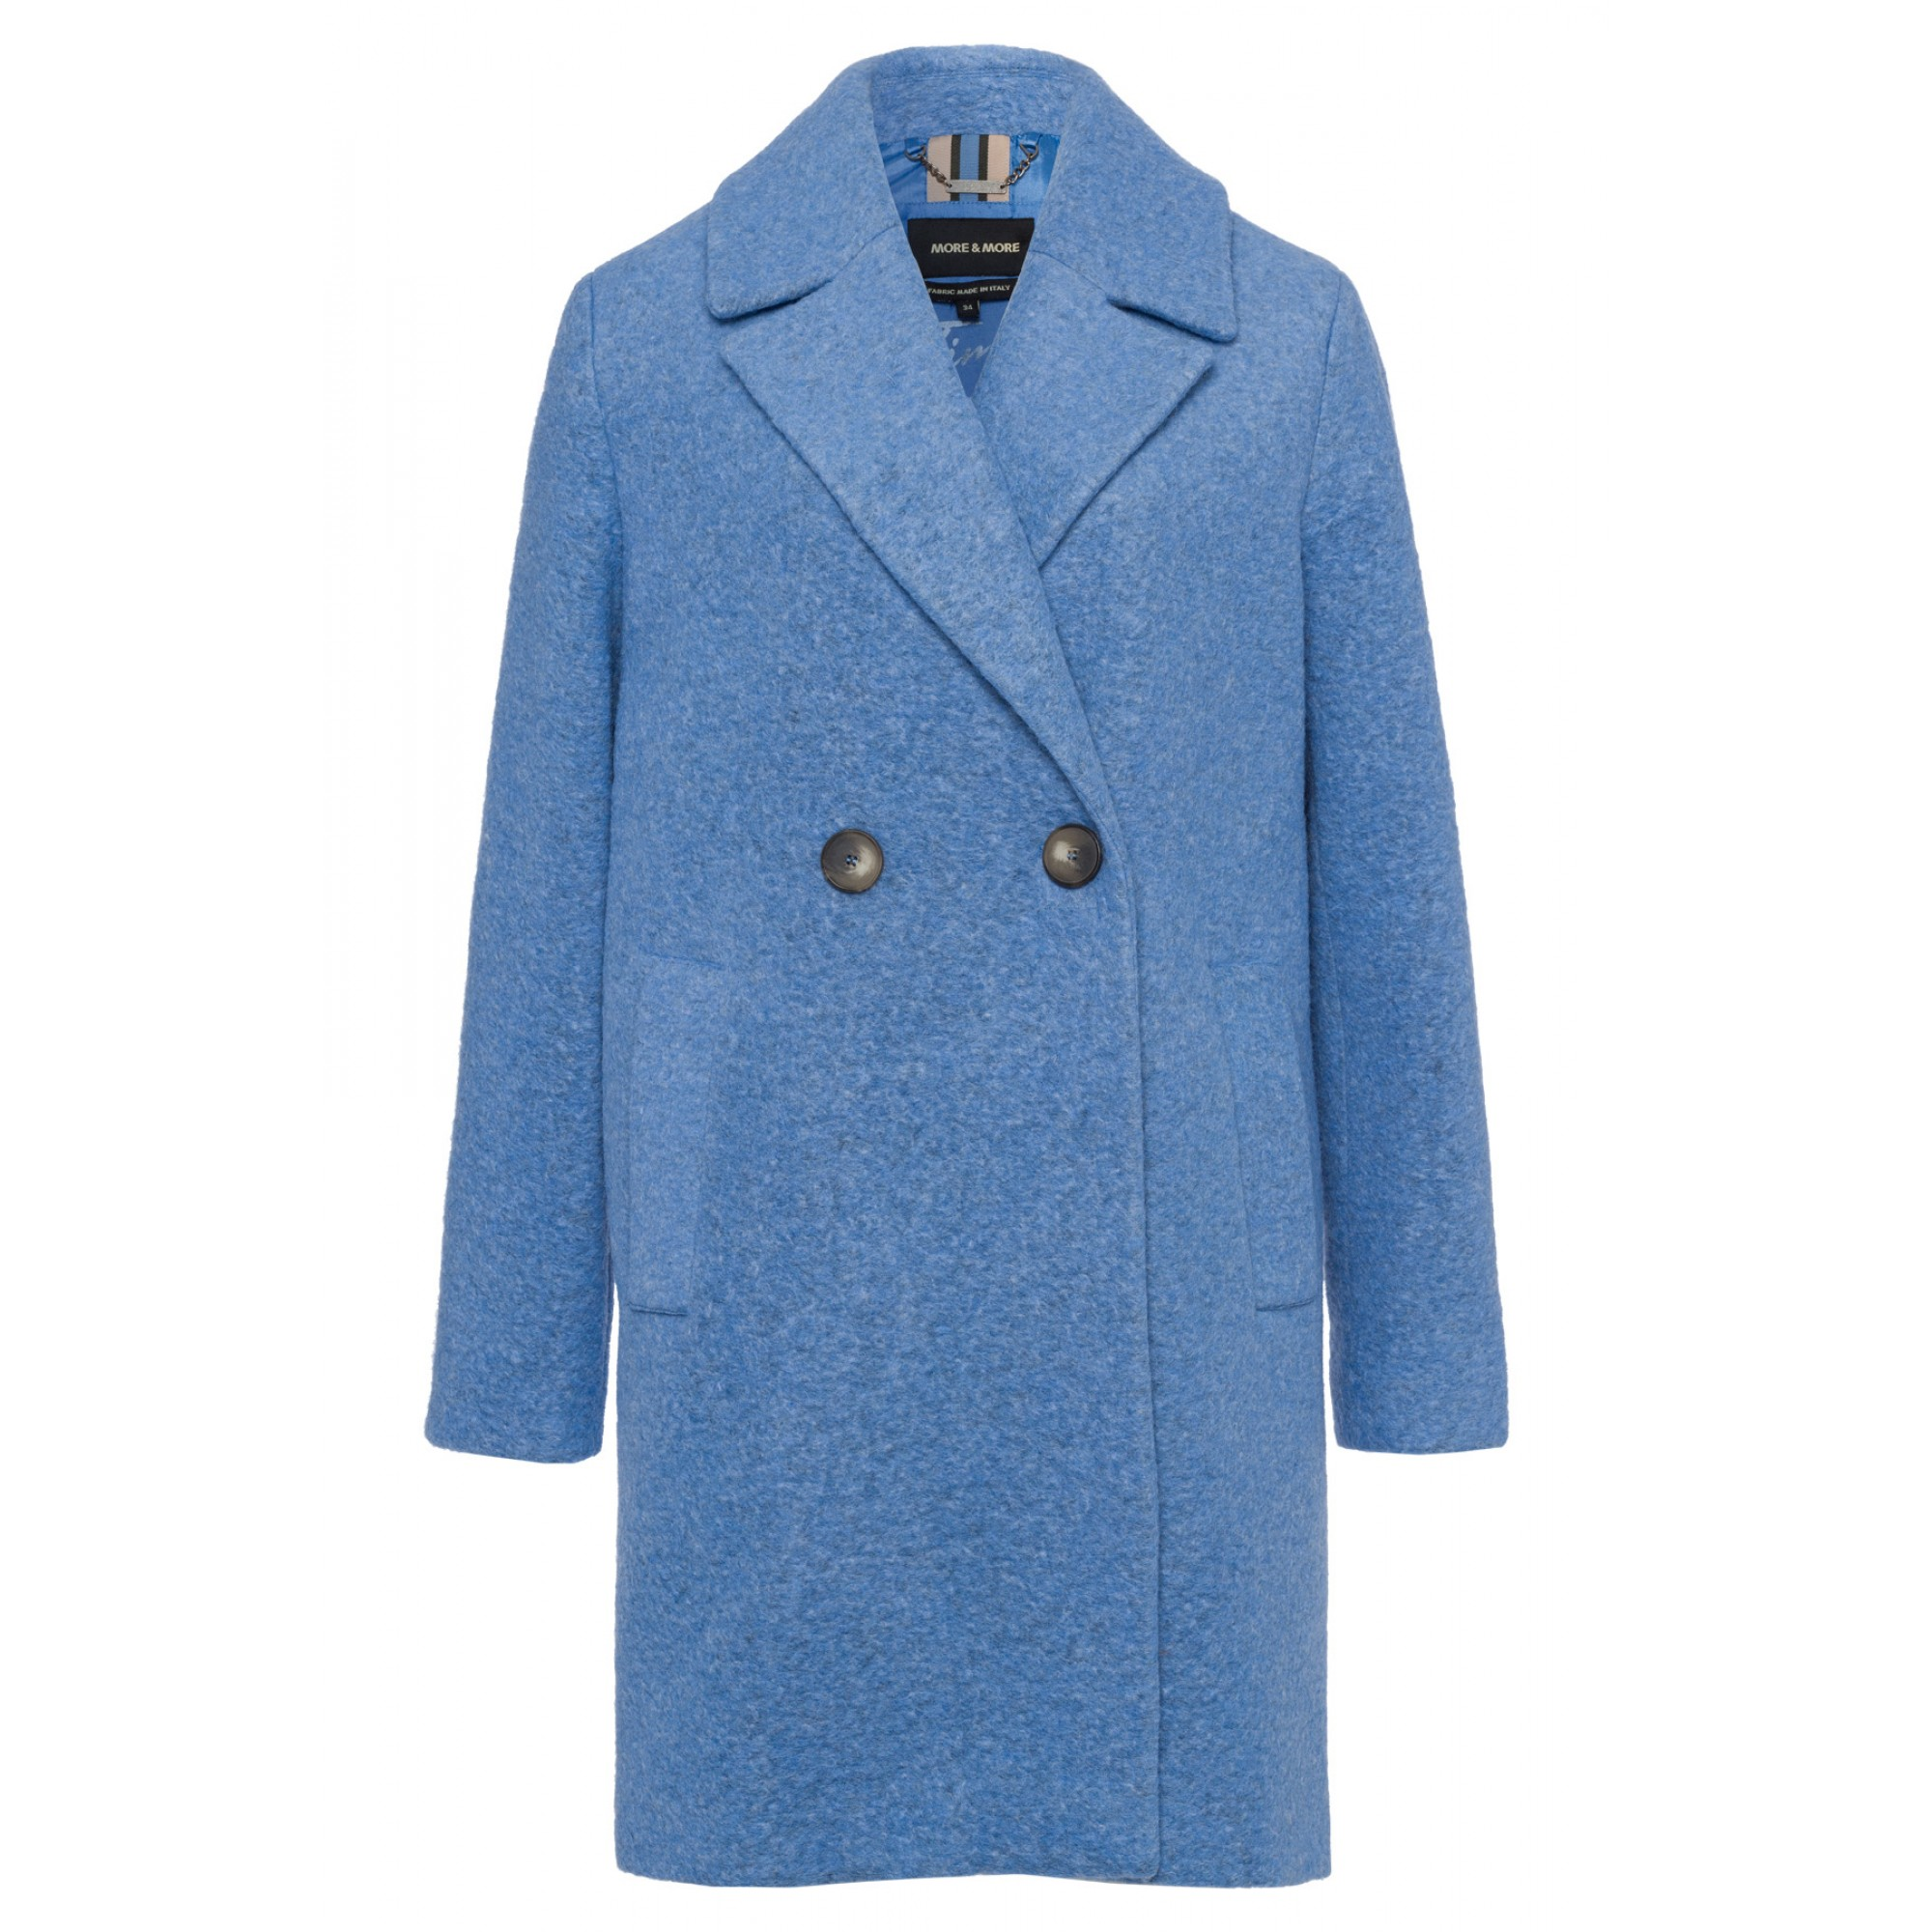 Kurzmantel, winter blue 91147009-0312 1